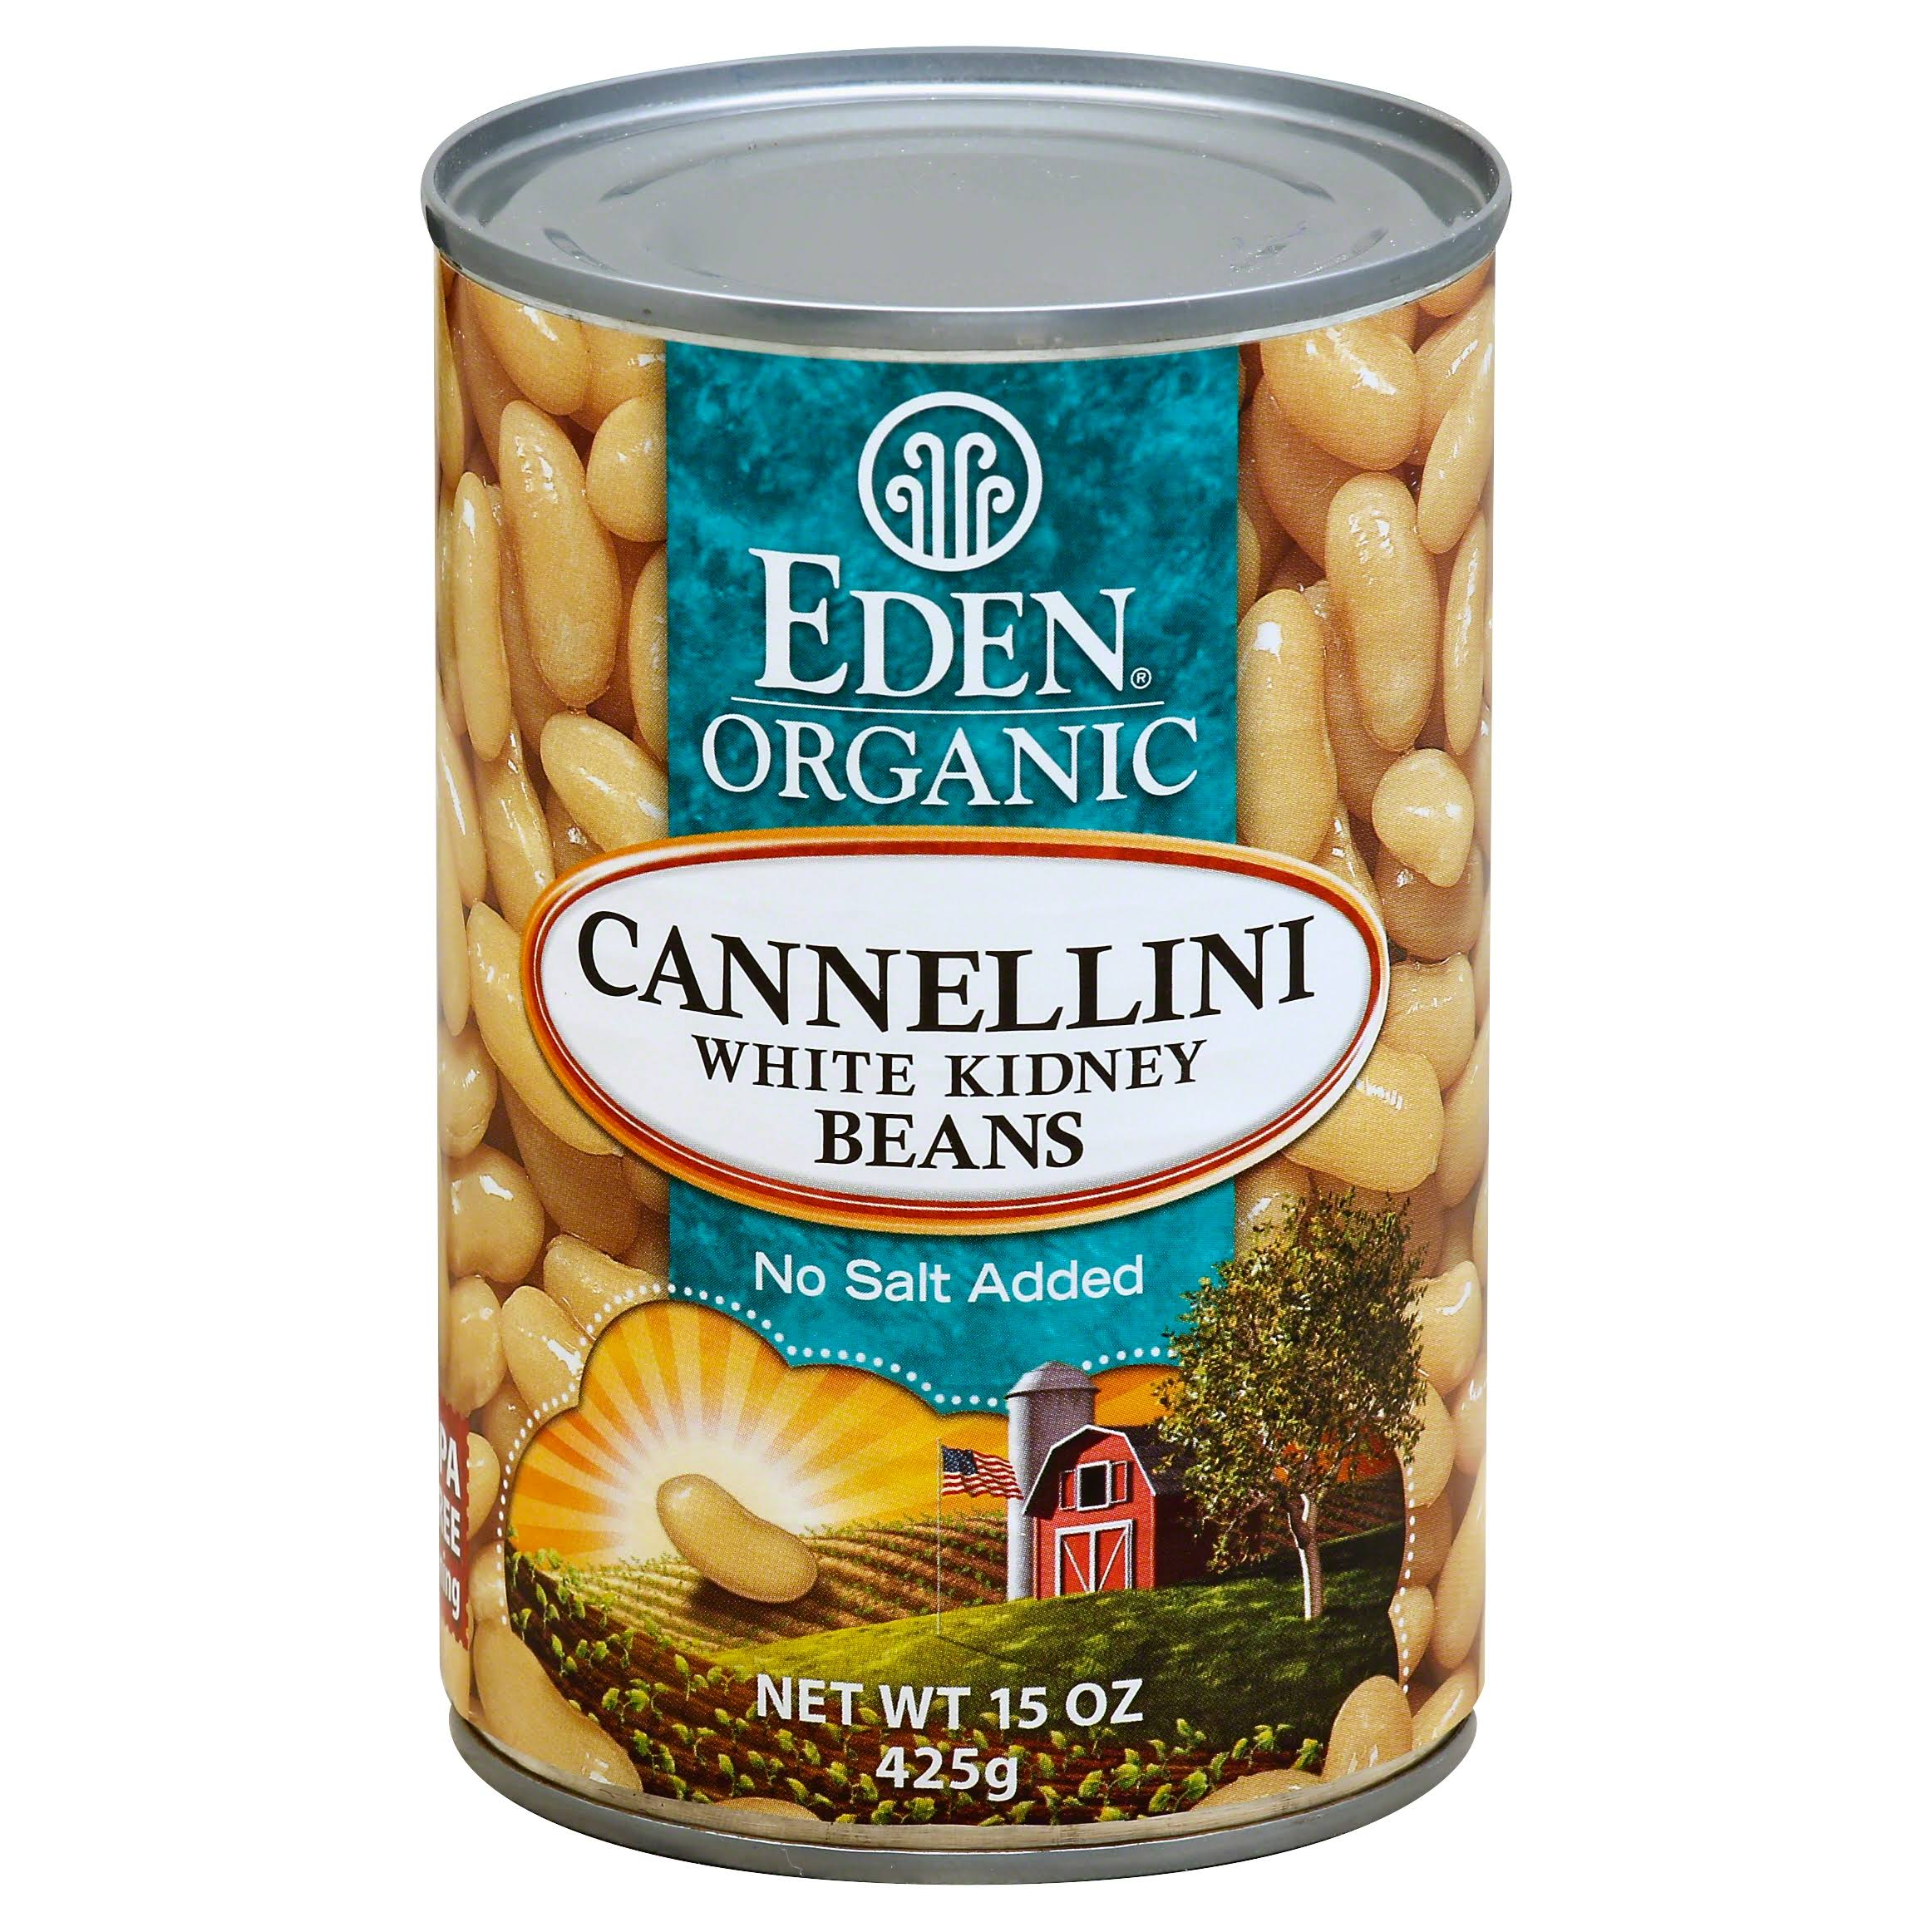 Eden Organic Cannellini White Kidney Beans - 15 oz can